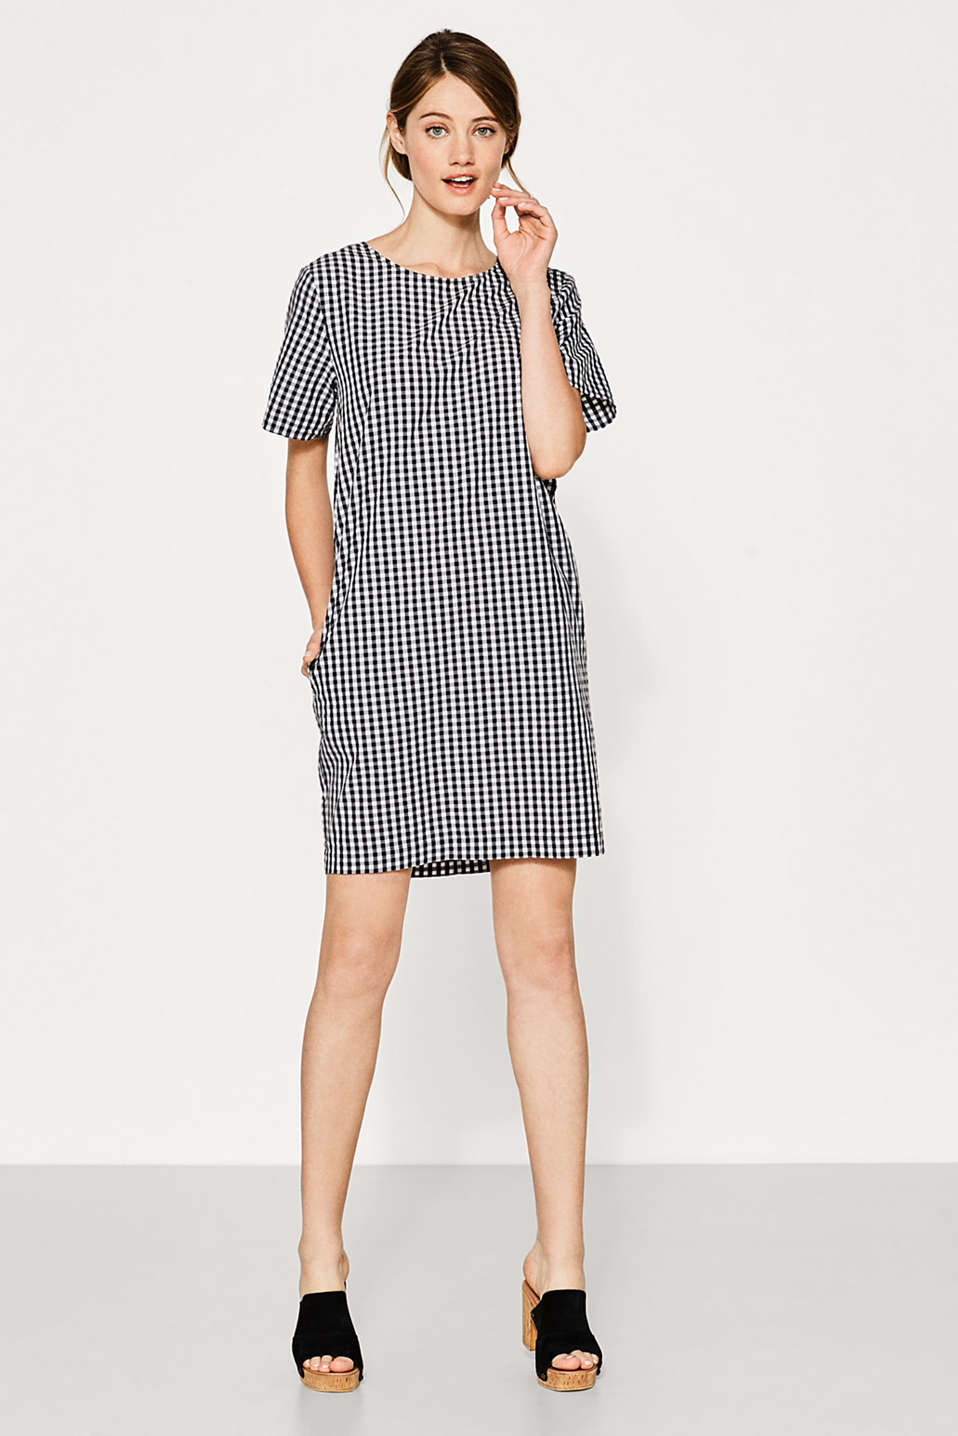 Gingham check dress in 100% cotton